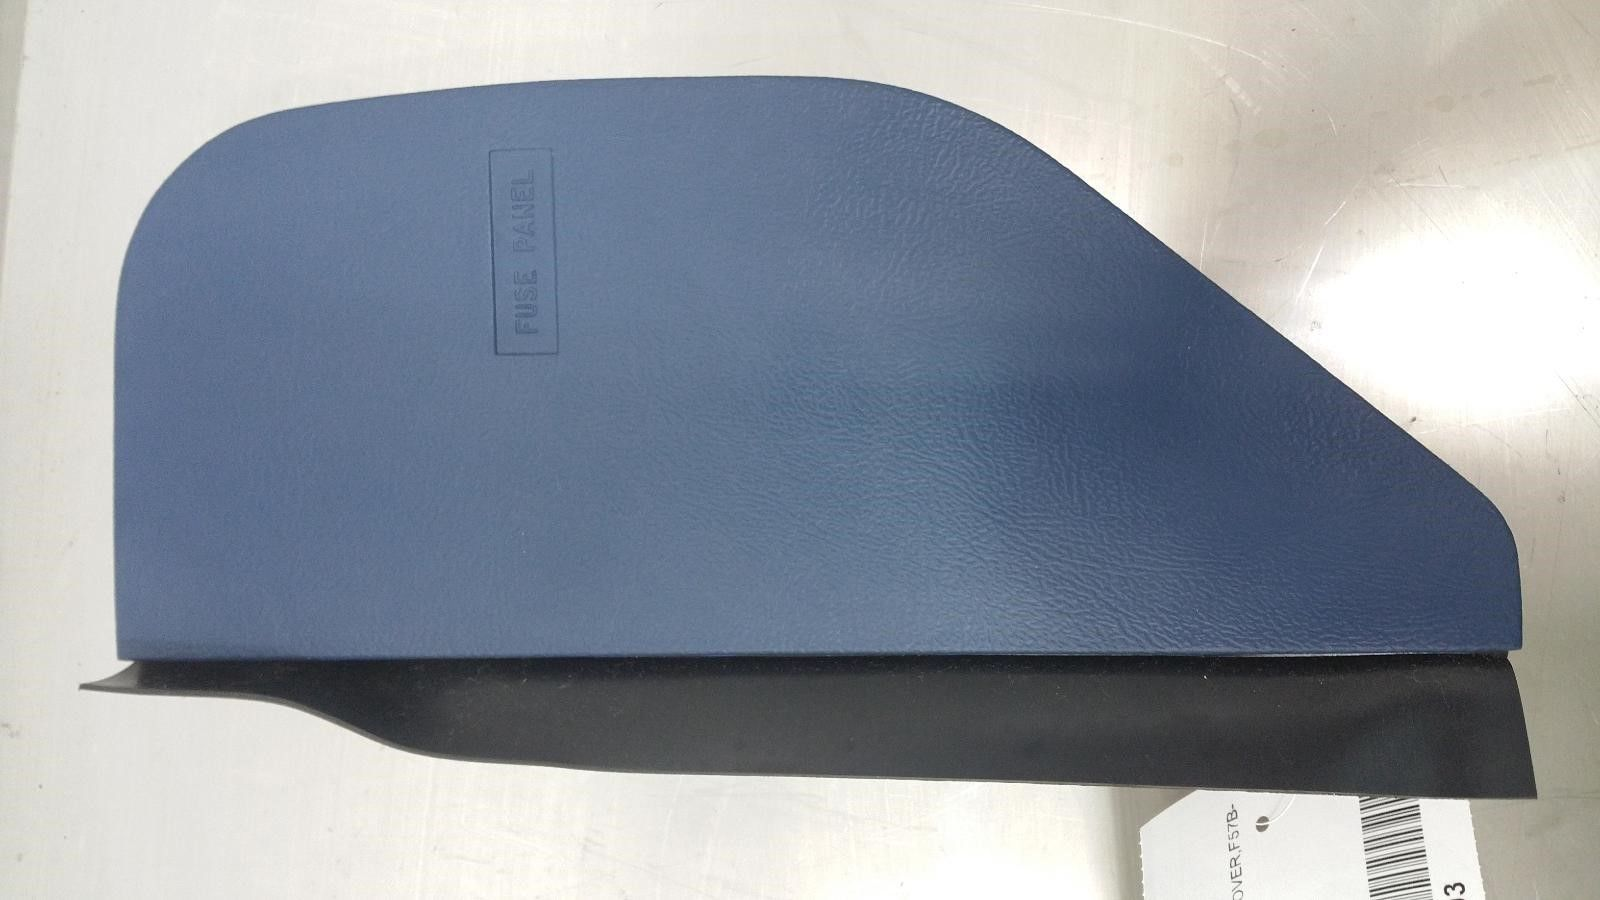 Ford Explorer Dash Fuse Box Cover Panel Door And Similar Items Blue 57